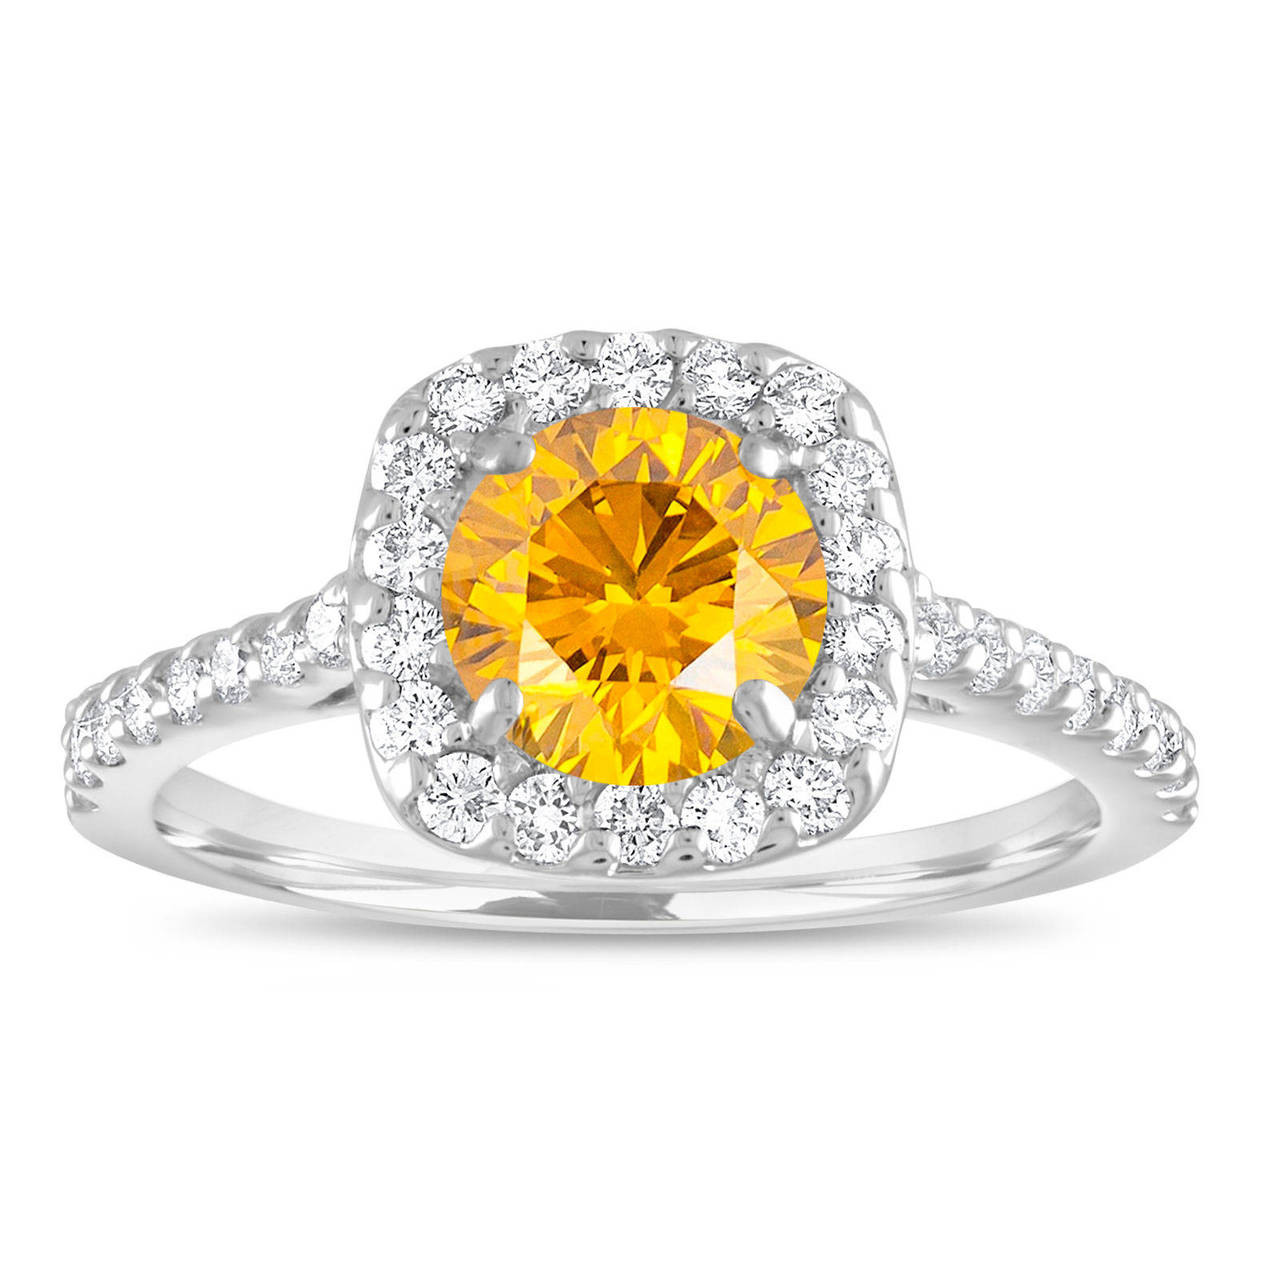 Yellow Diamond Engagement Ring Canary Yellow Diamond Bridal Ring Cushion Cut Ring 1 58 Carat 14k White Gold Unique Halo Certified Handmade